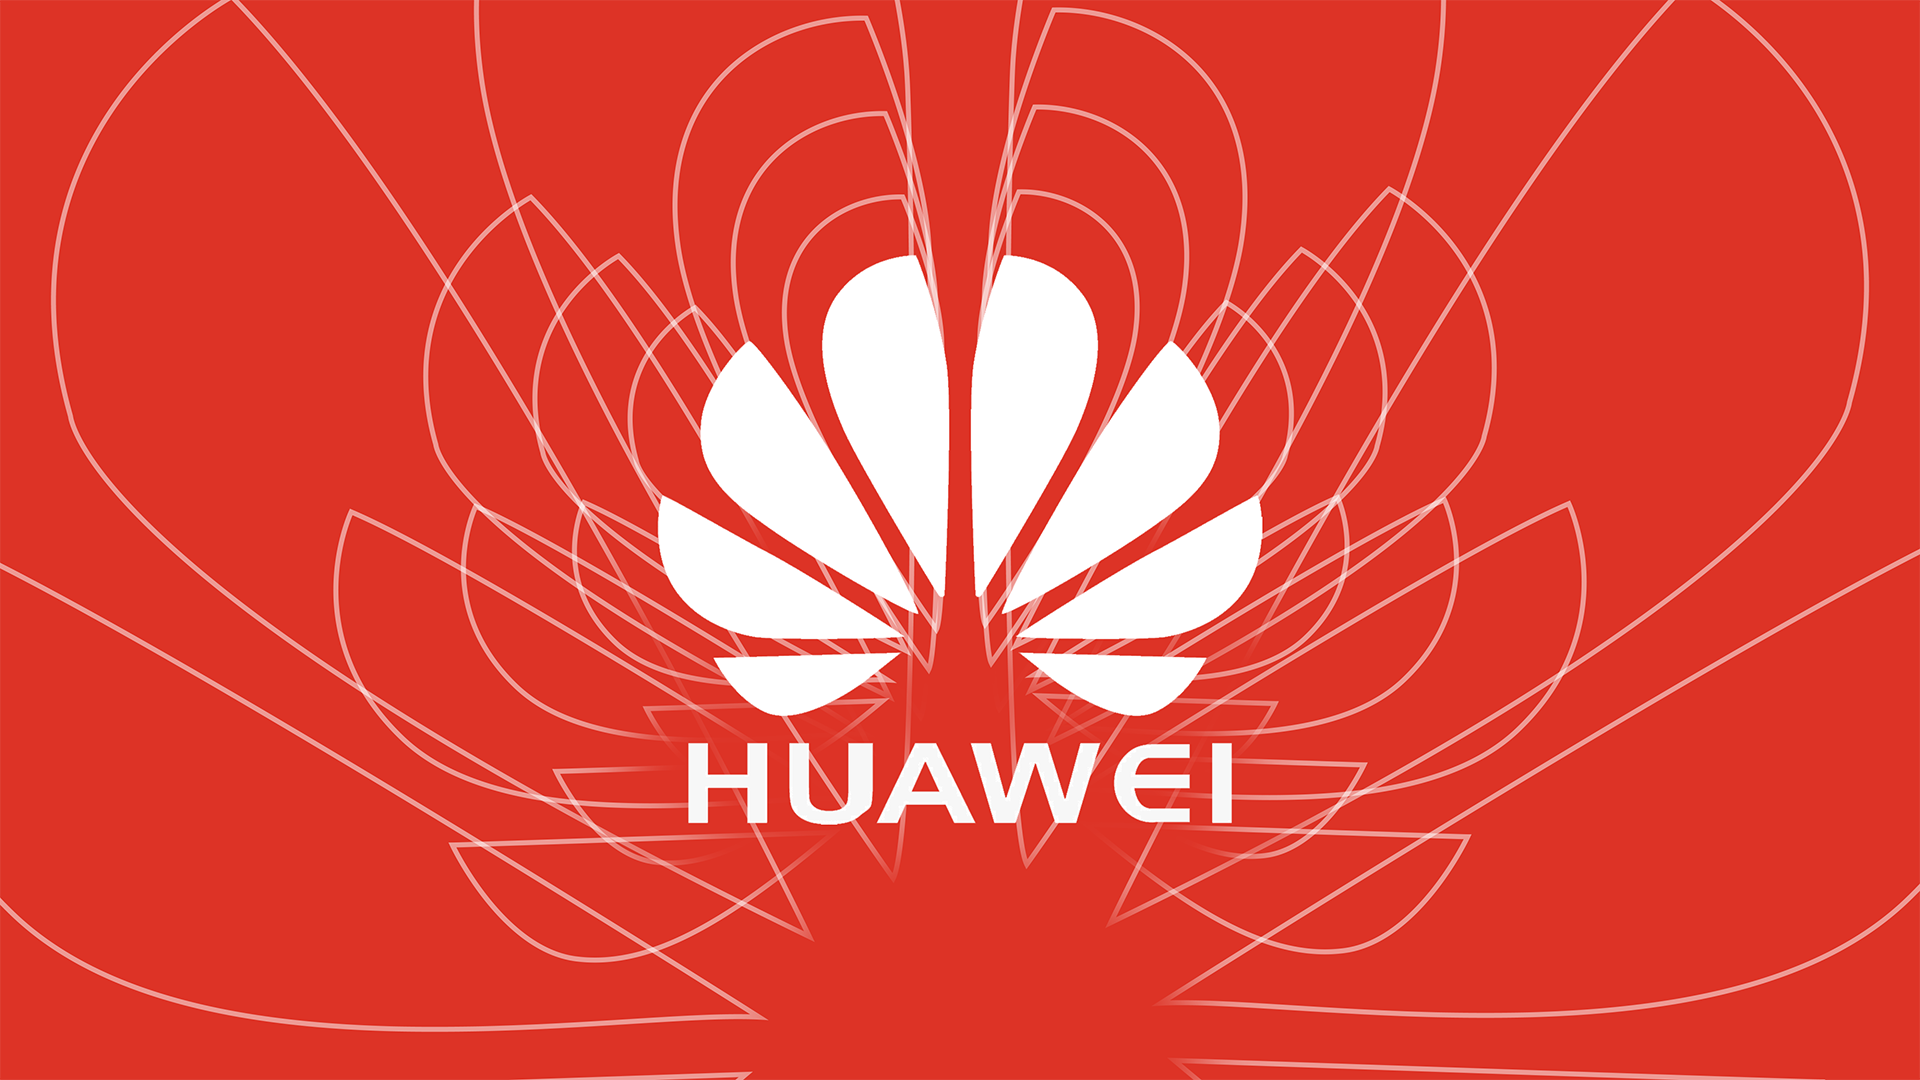 Huawei Logo. Illustration by Umesh Maharjan / E-Nepsters